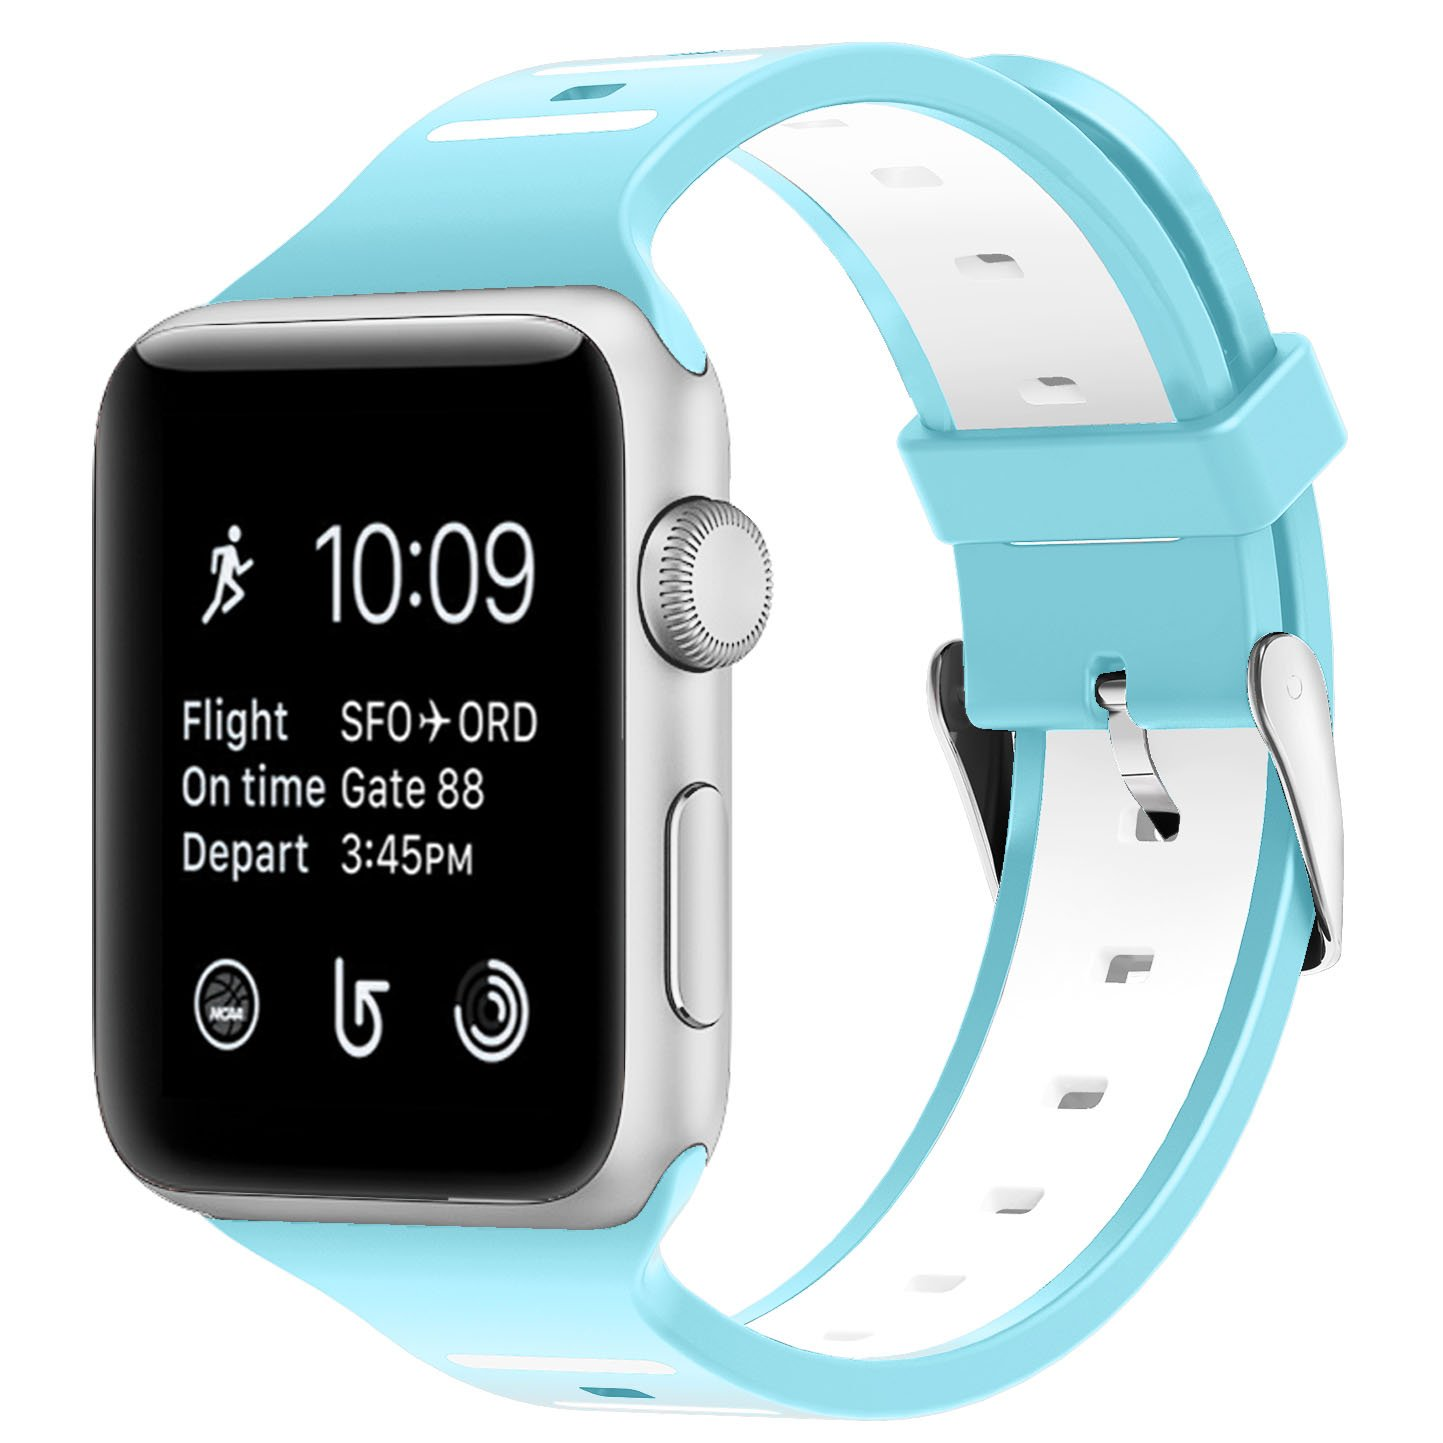 Tounique - Correa de Reloj para Apple Watch, Doble Color, Diseño ...